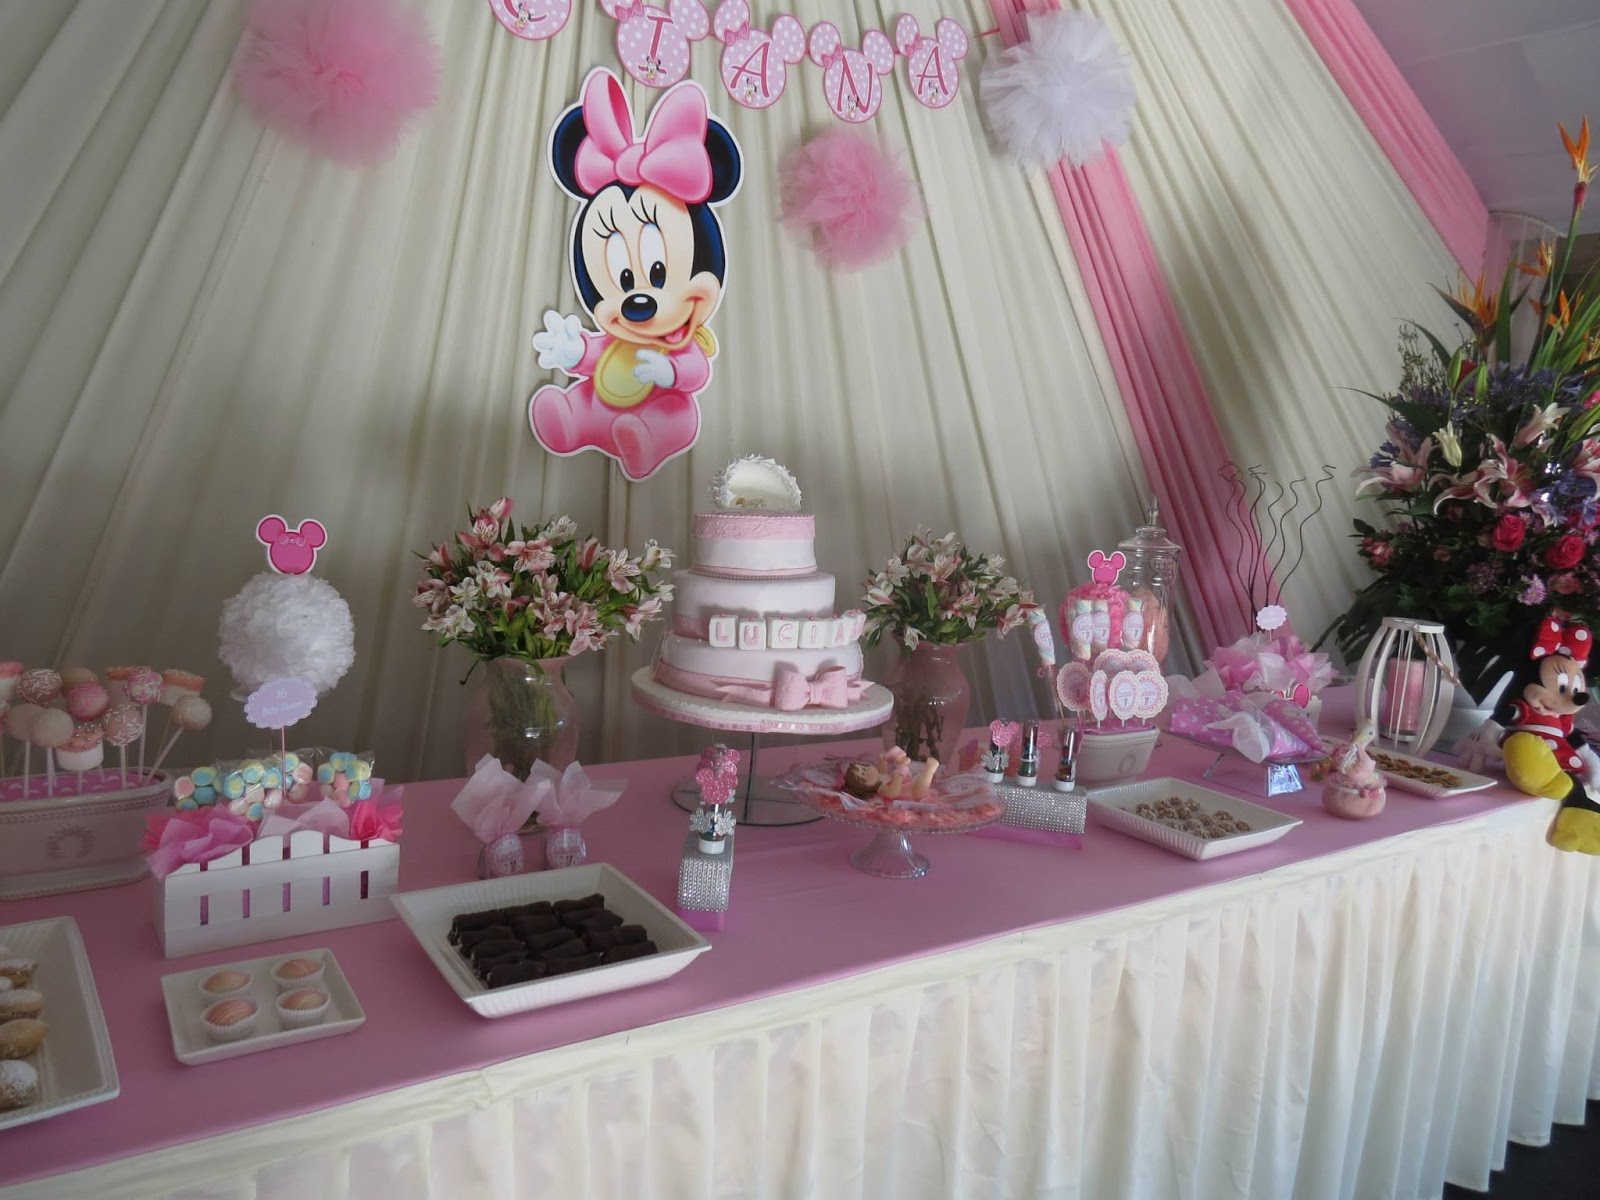 Decorci n baby shower ni o ni a recuerdos juegos for Decoracion casa shower